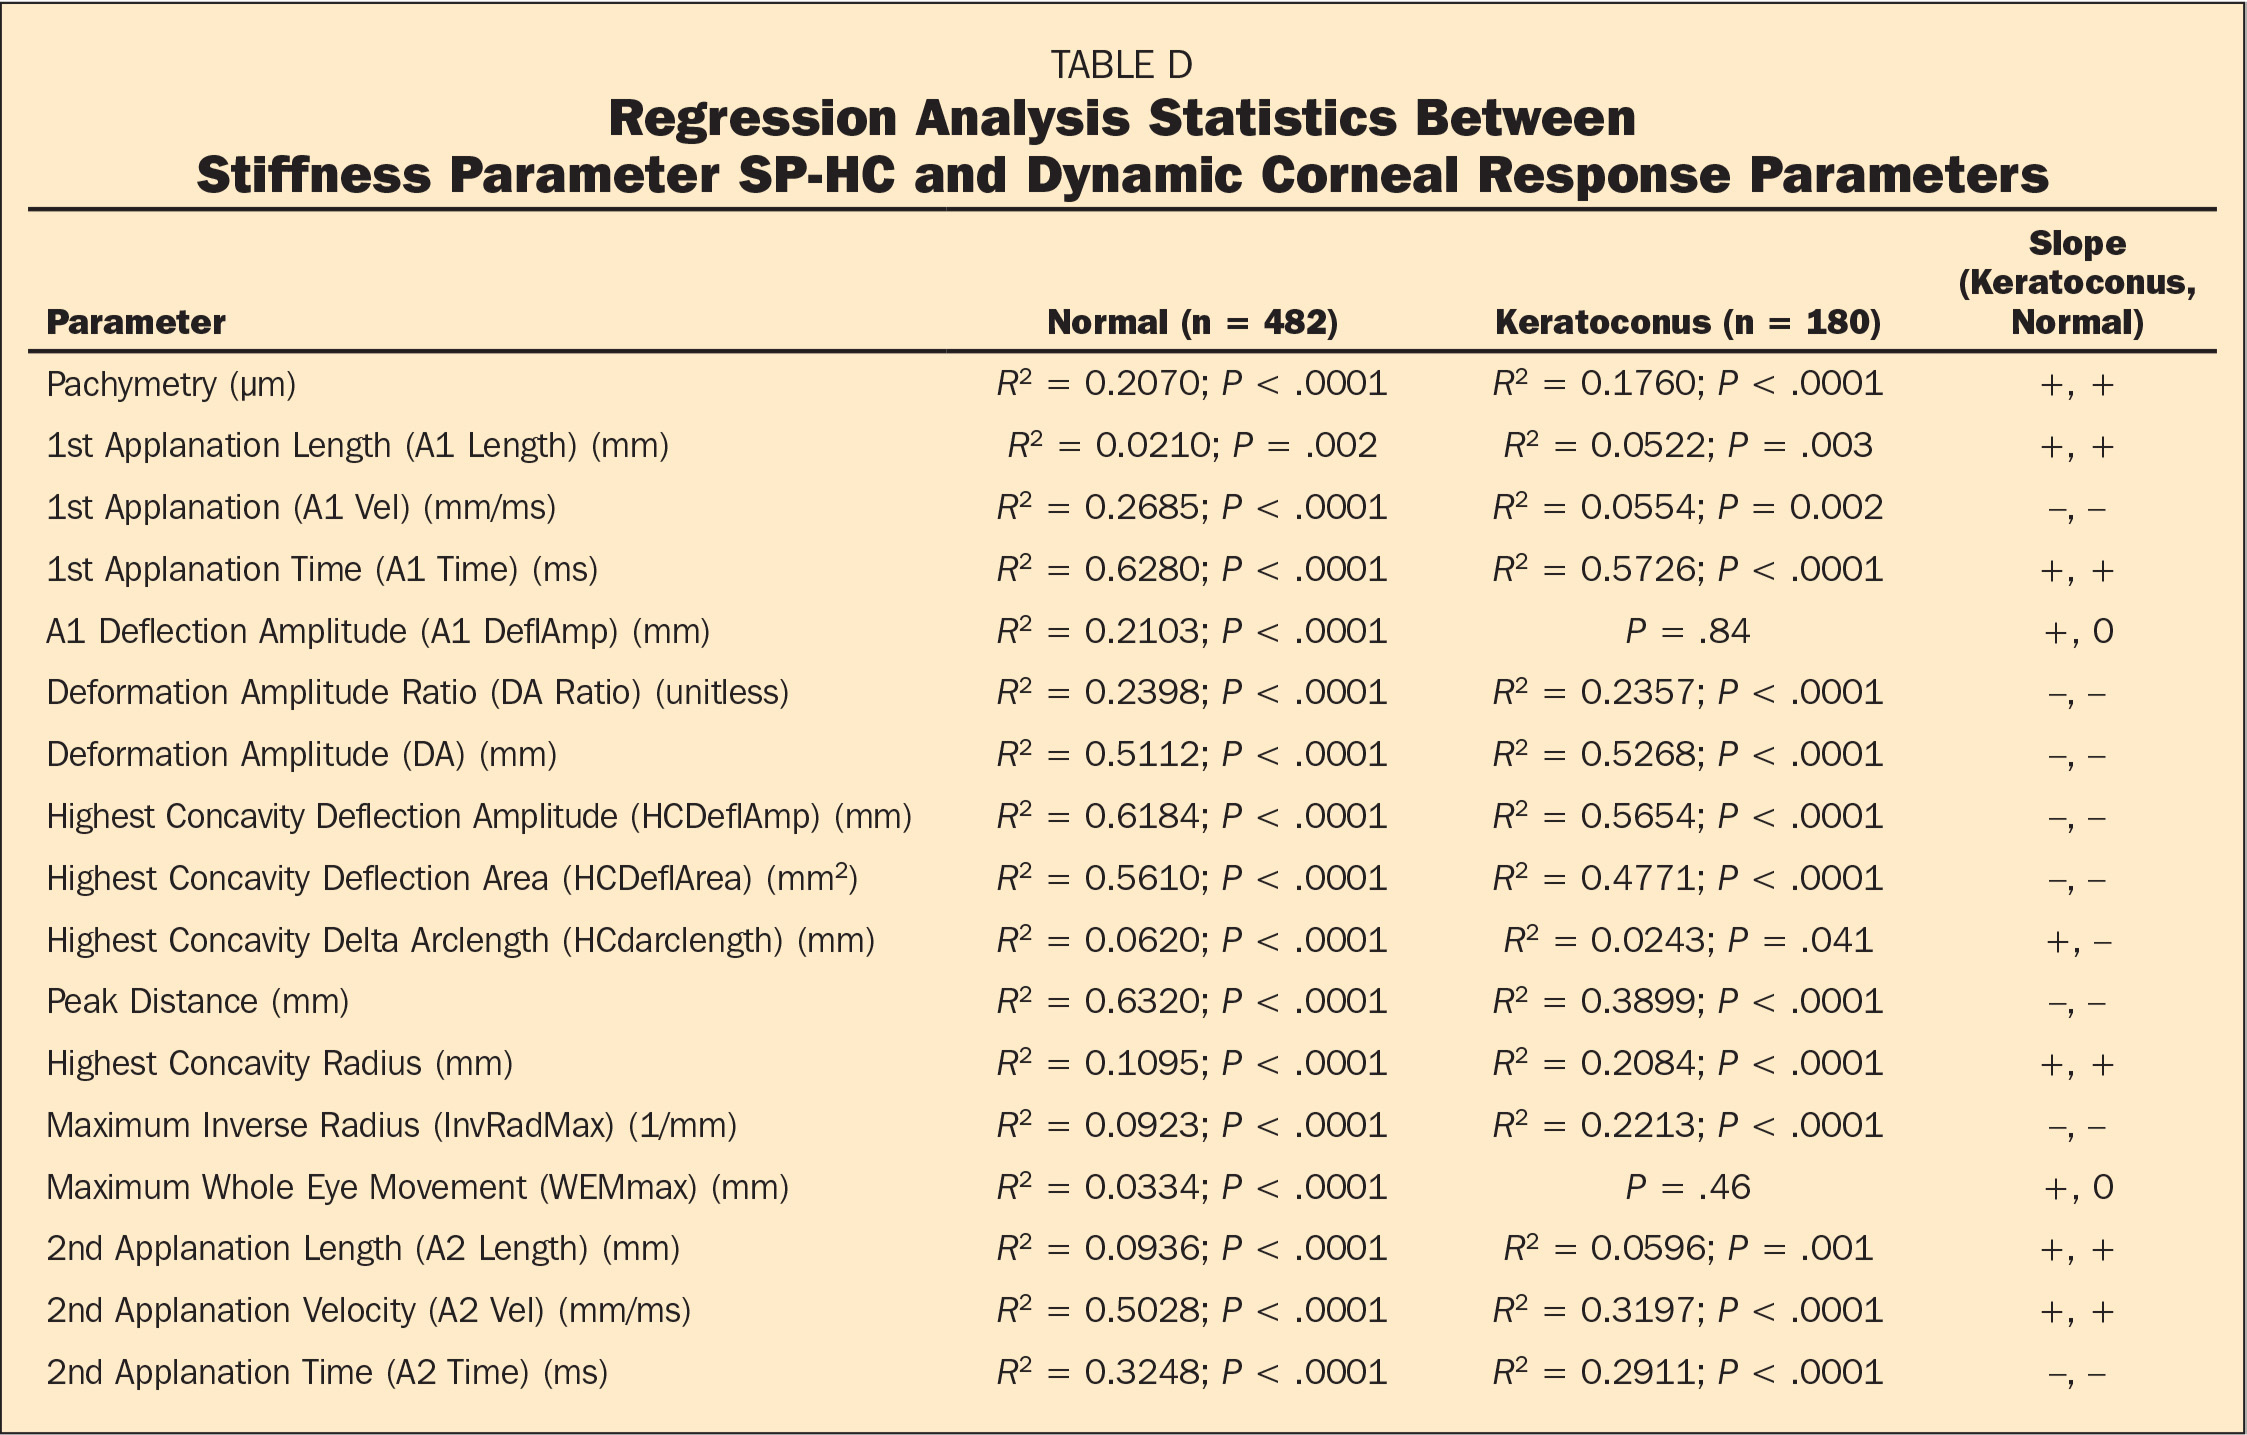 Regression Analysis Statistics Between Stiffness Parameter SP-HC and Dynamic Corneal Response Parameters